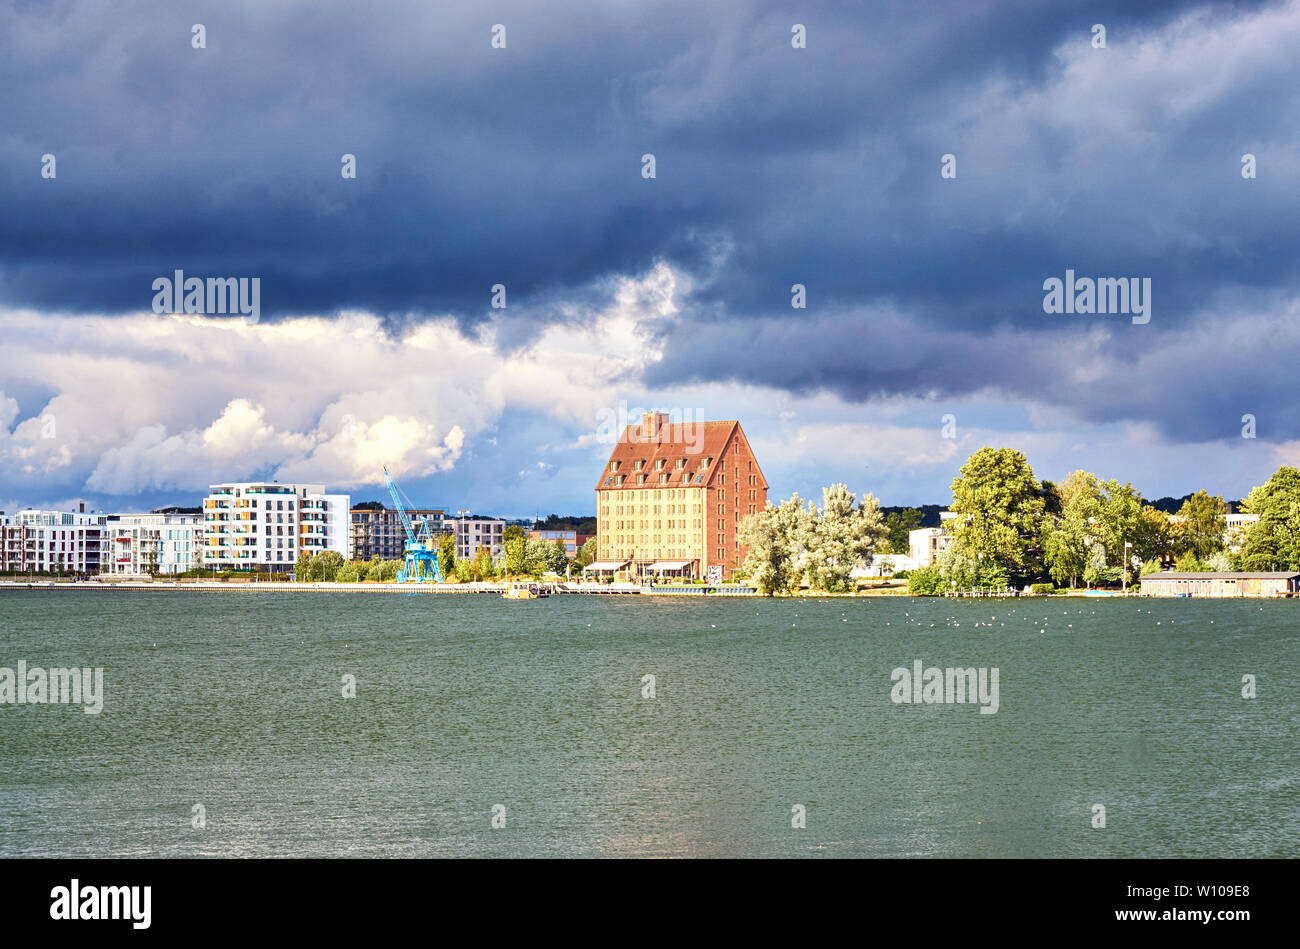 Dramatic clouds over the lake and the city of Schwerin. Mecklenburg-Vorpommern, Germany - Stock Image